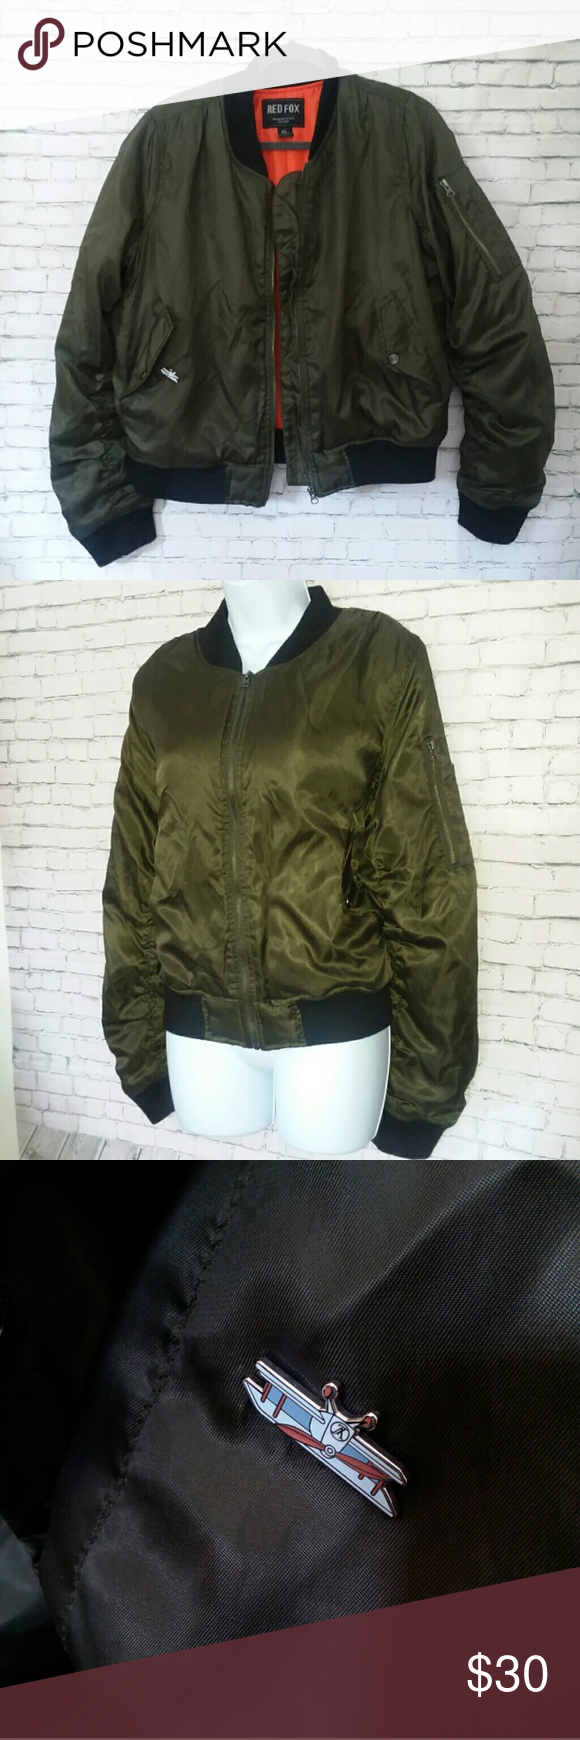 Red Fox Army Green Military Bomber Jacket Red Fox Army Green Military Bomber Jacket Ma 1 Style In Xl Army Military Bomber Jacket Bomber Jacket Army Green [ 1740 x 580 Pixel ]